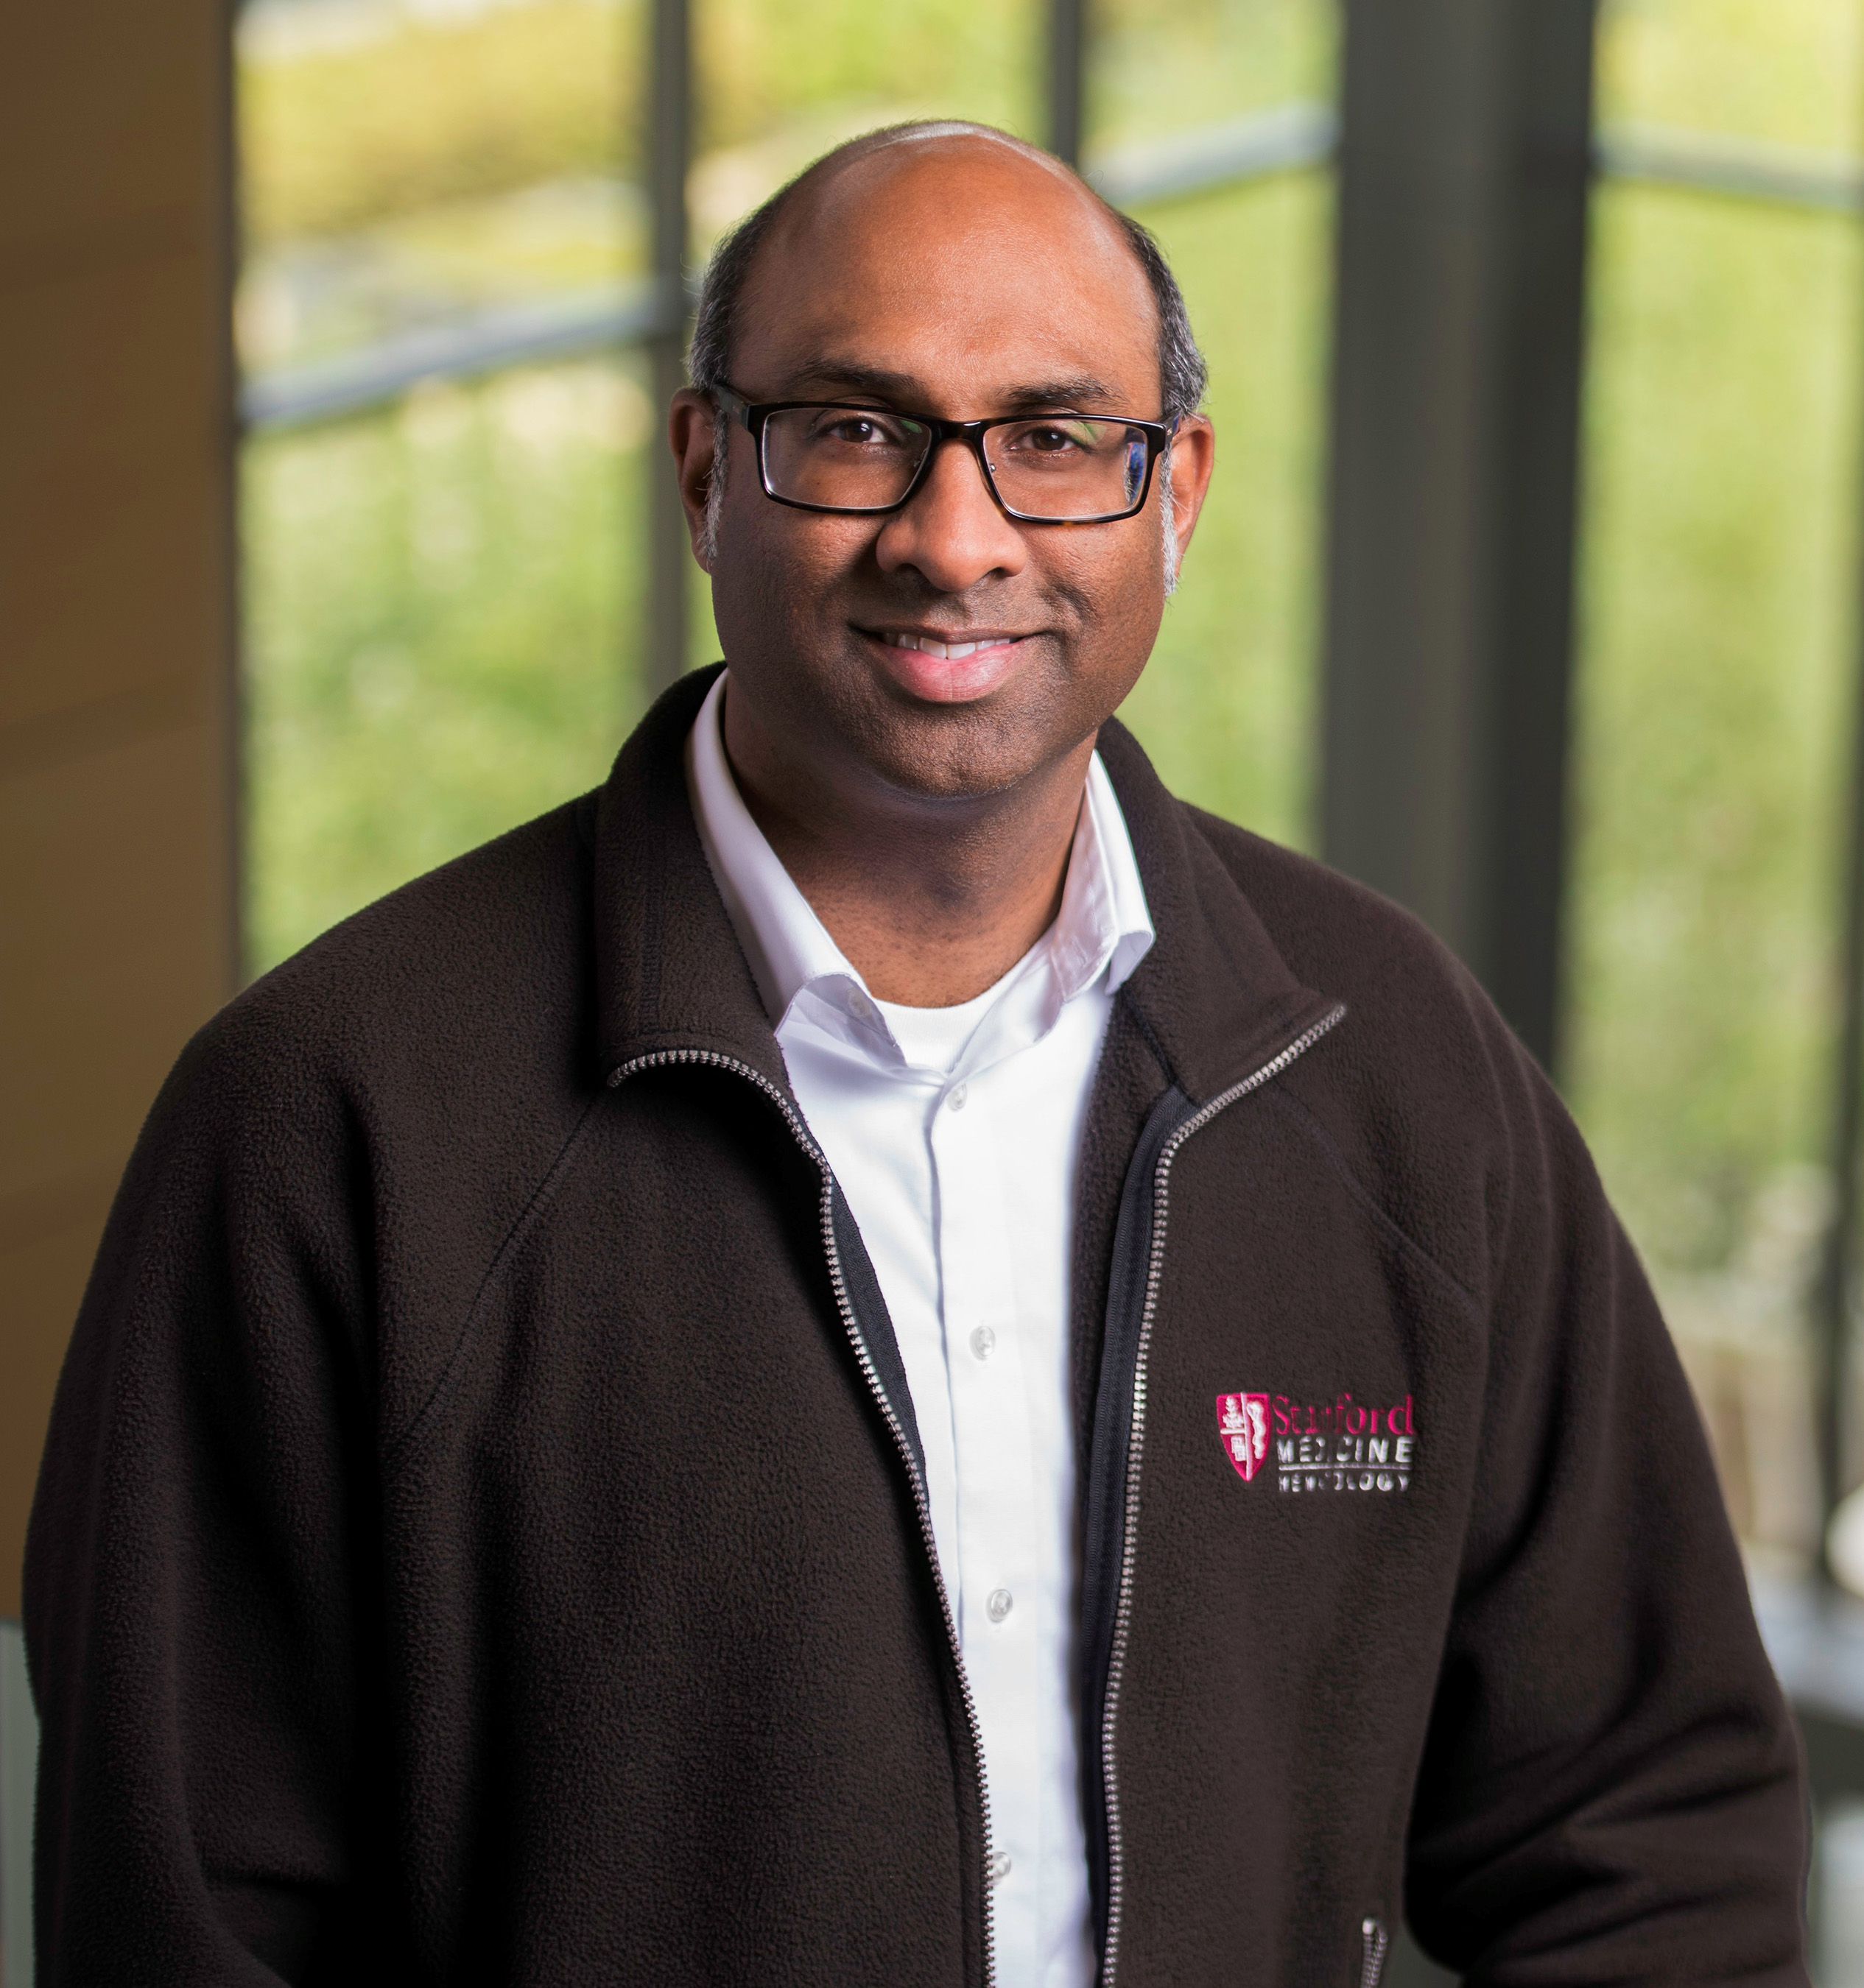 Ravindra Majeti, M.D., Ph.D., Stanford University